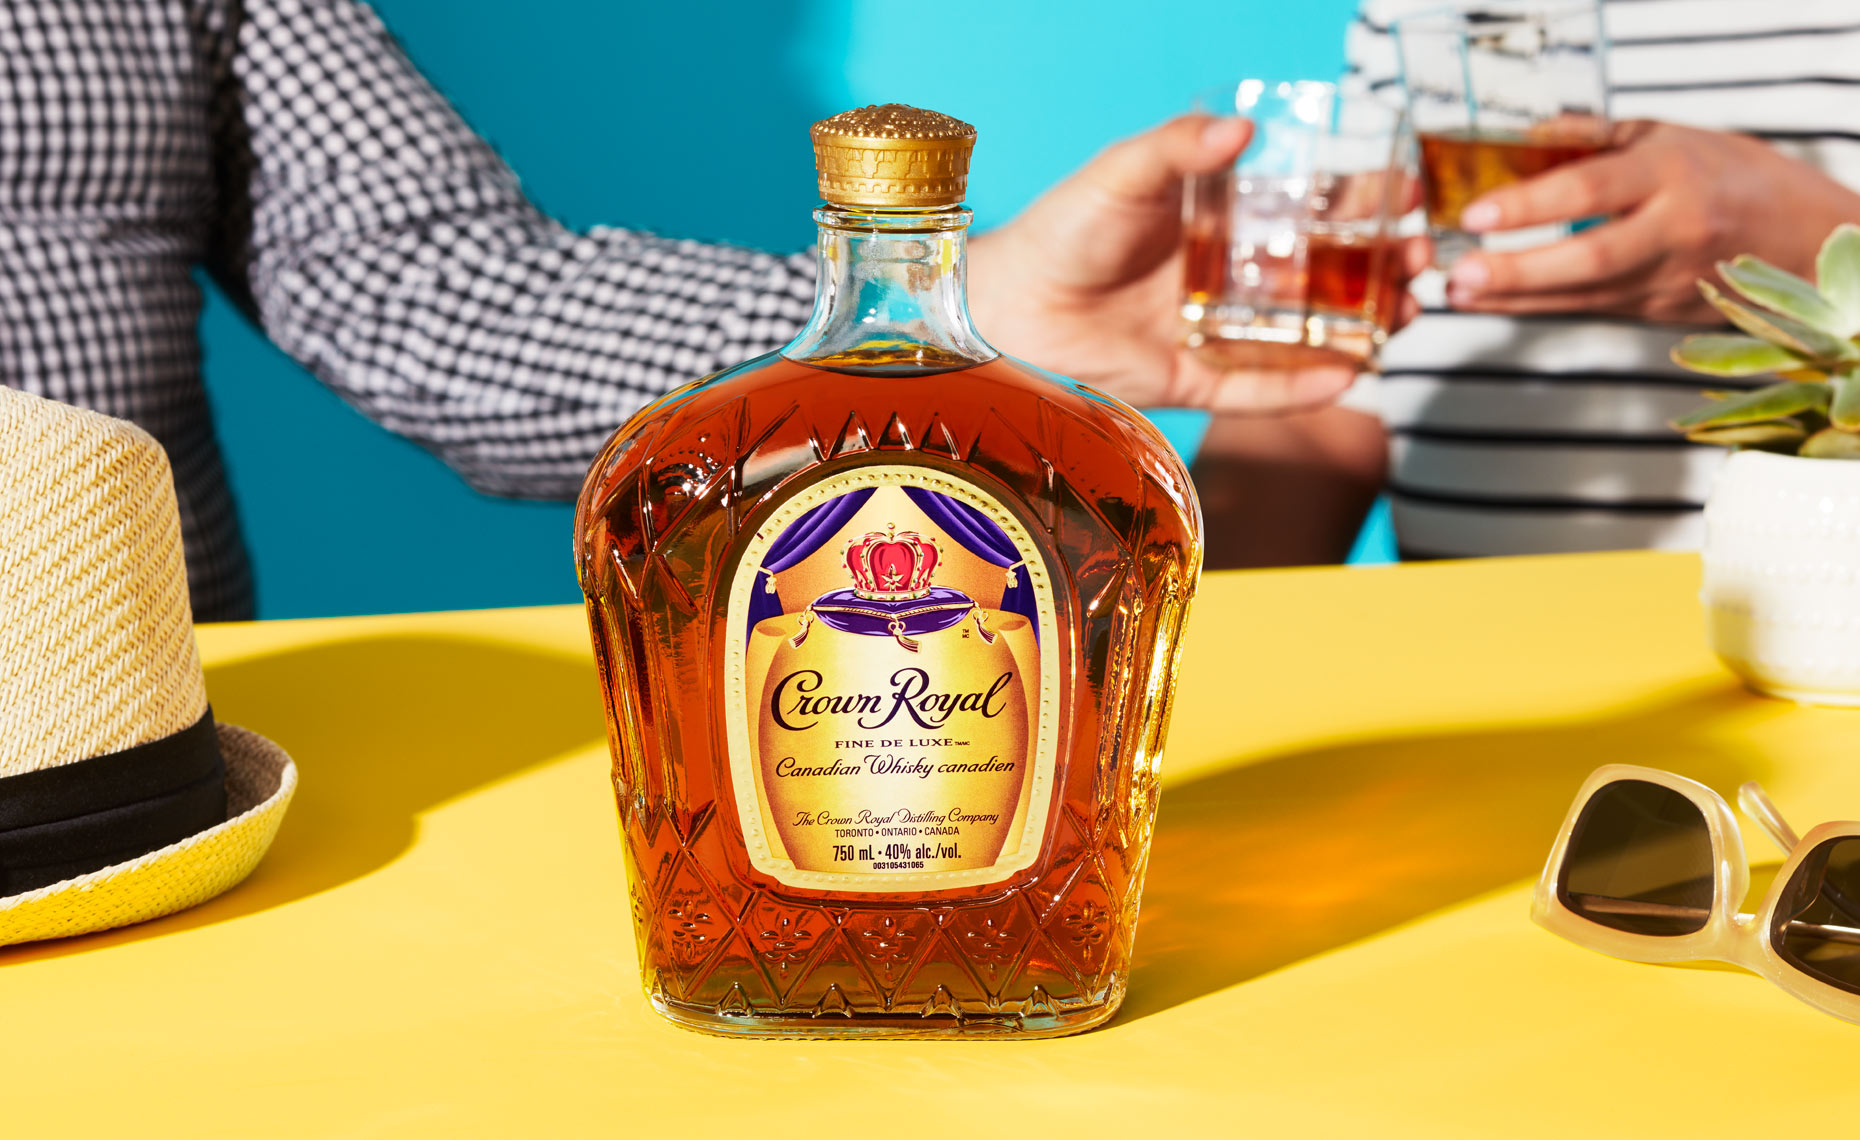 30597_P3_BrandSpotlight_CrownRoyal_TableSIgn_WEB